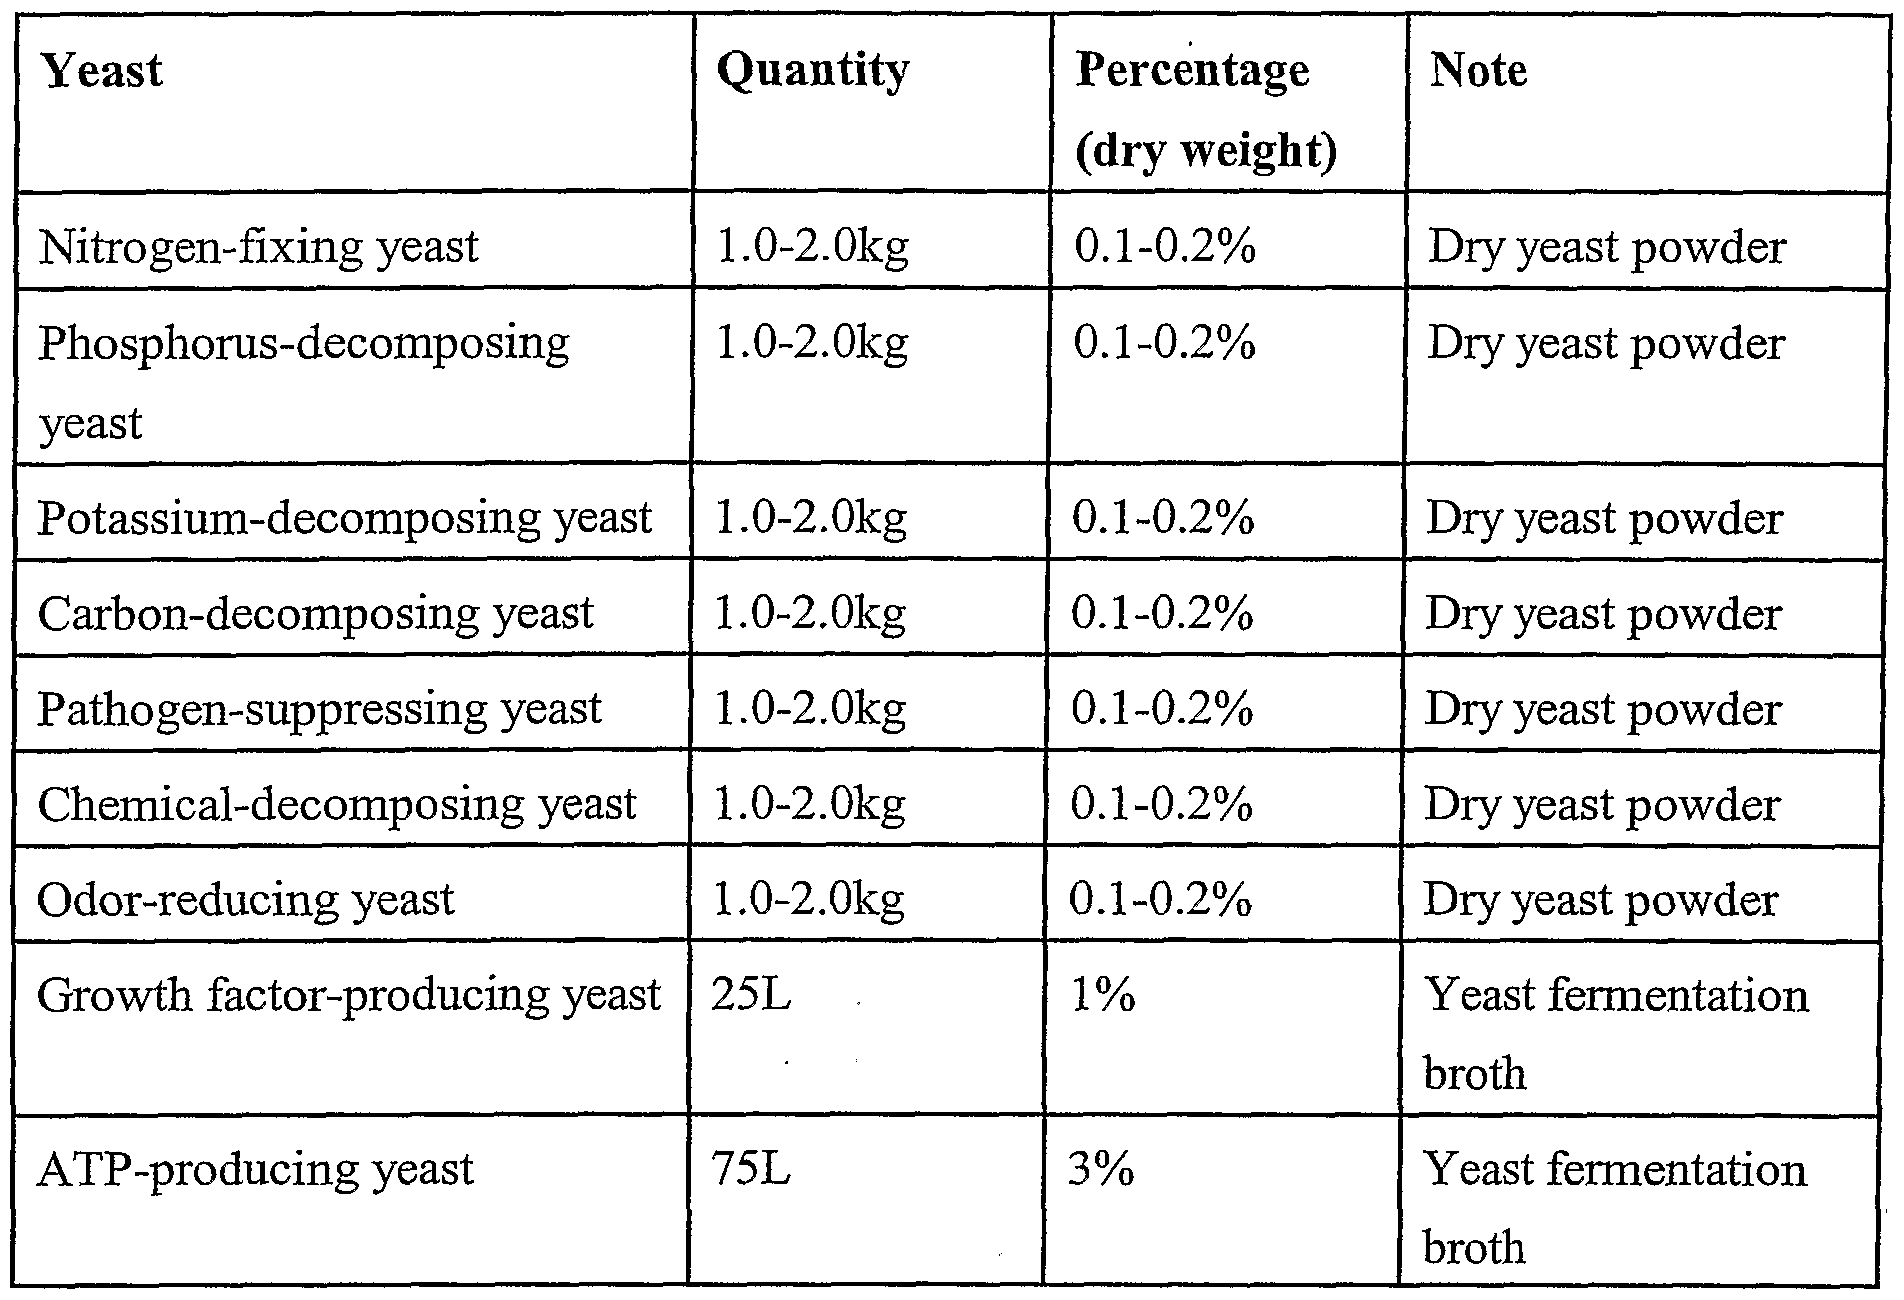 Yeast as a fertilizer activates the root growth